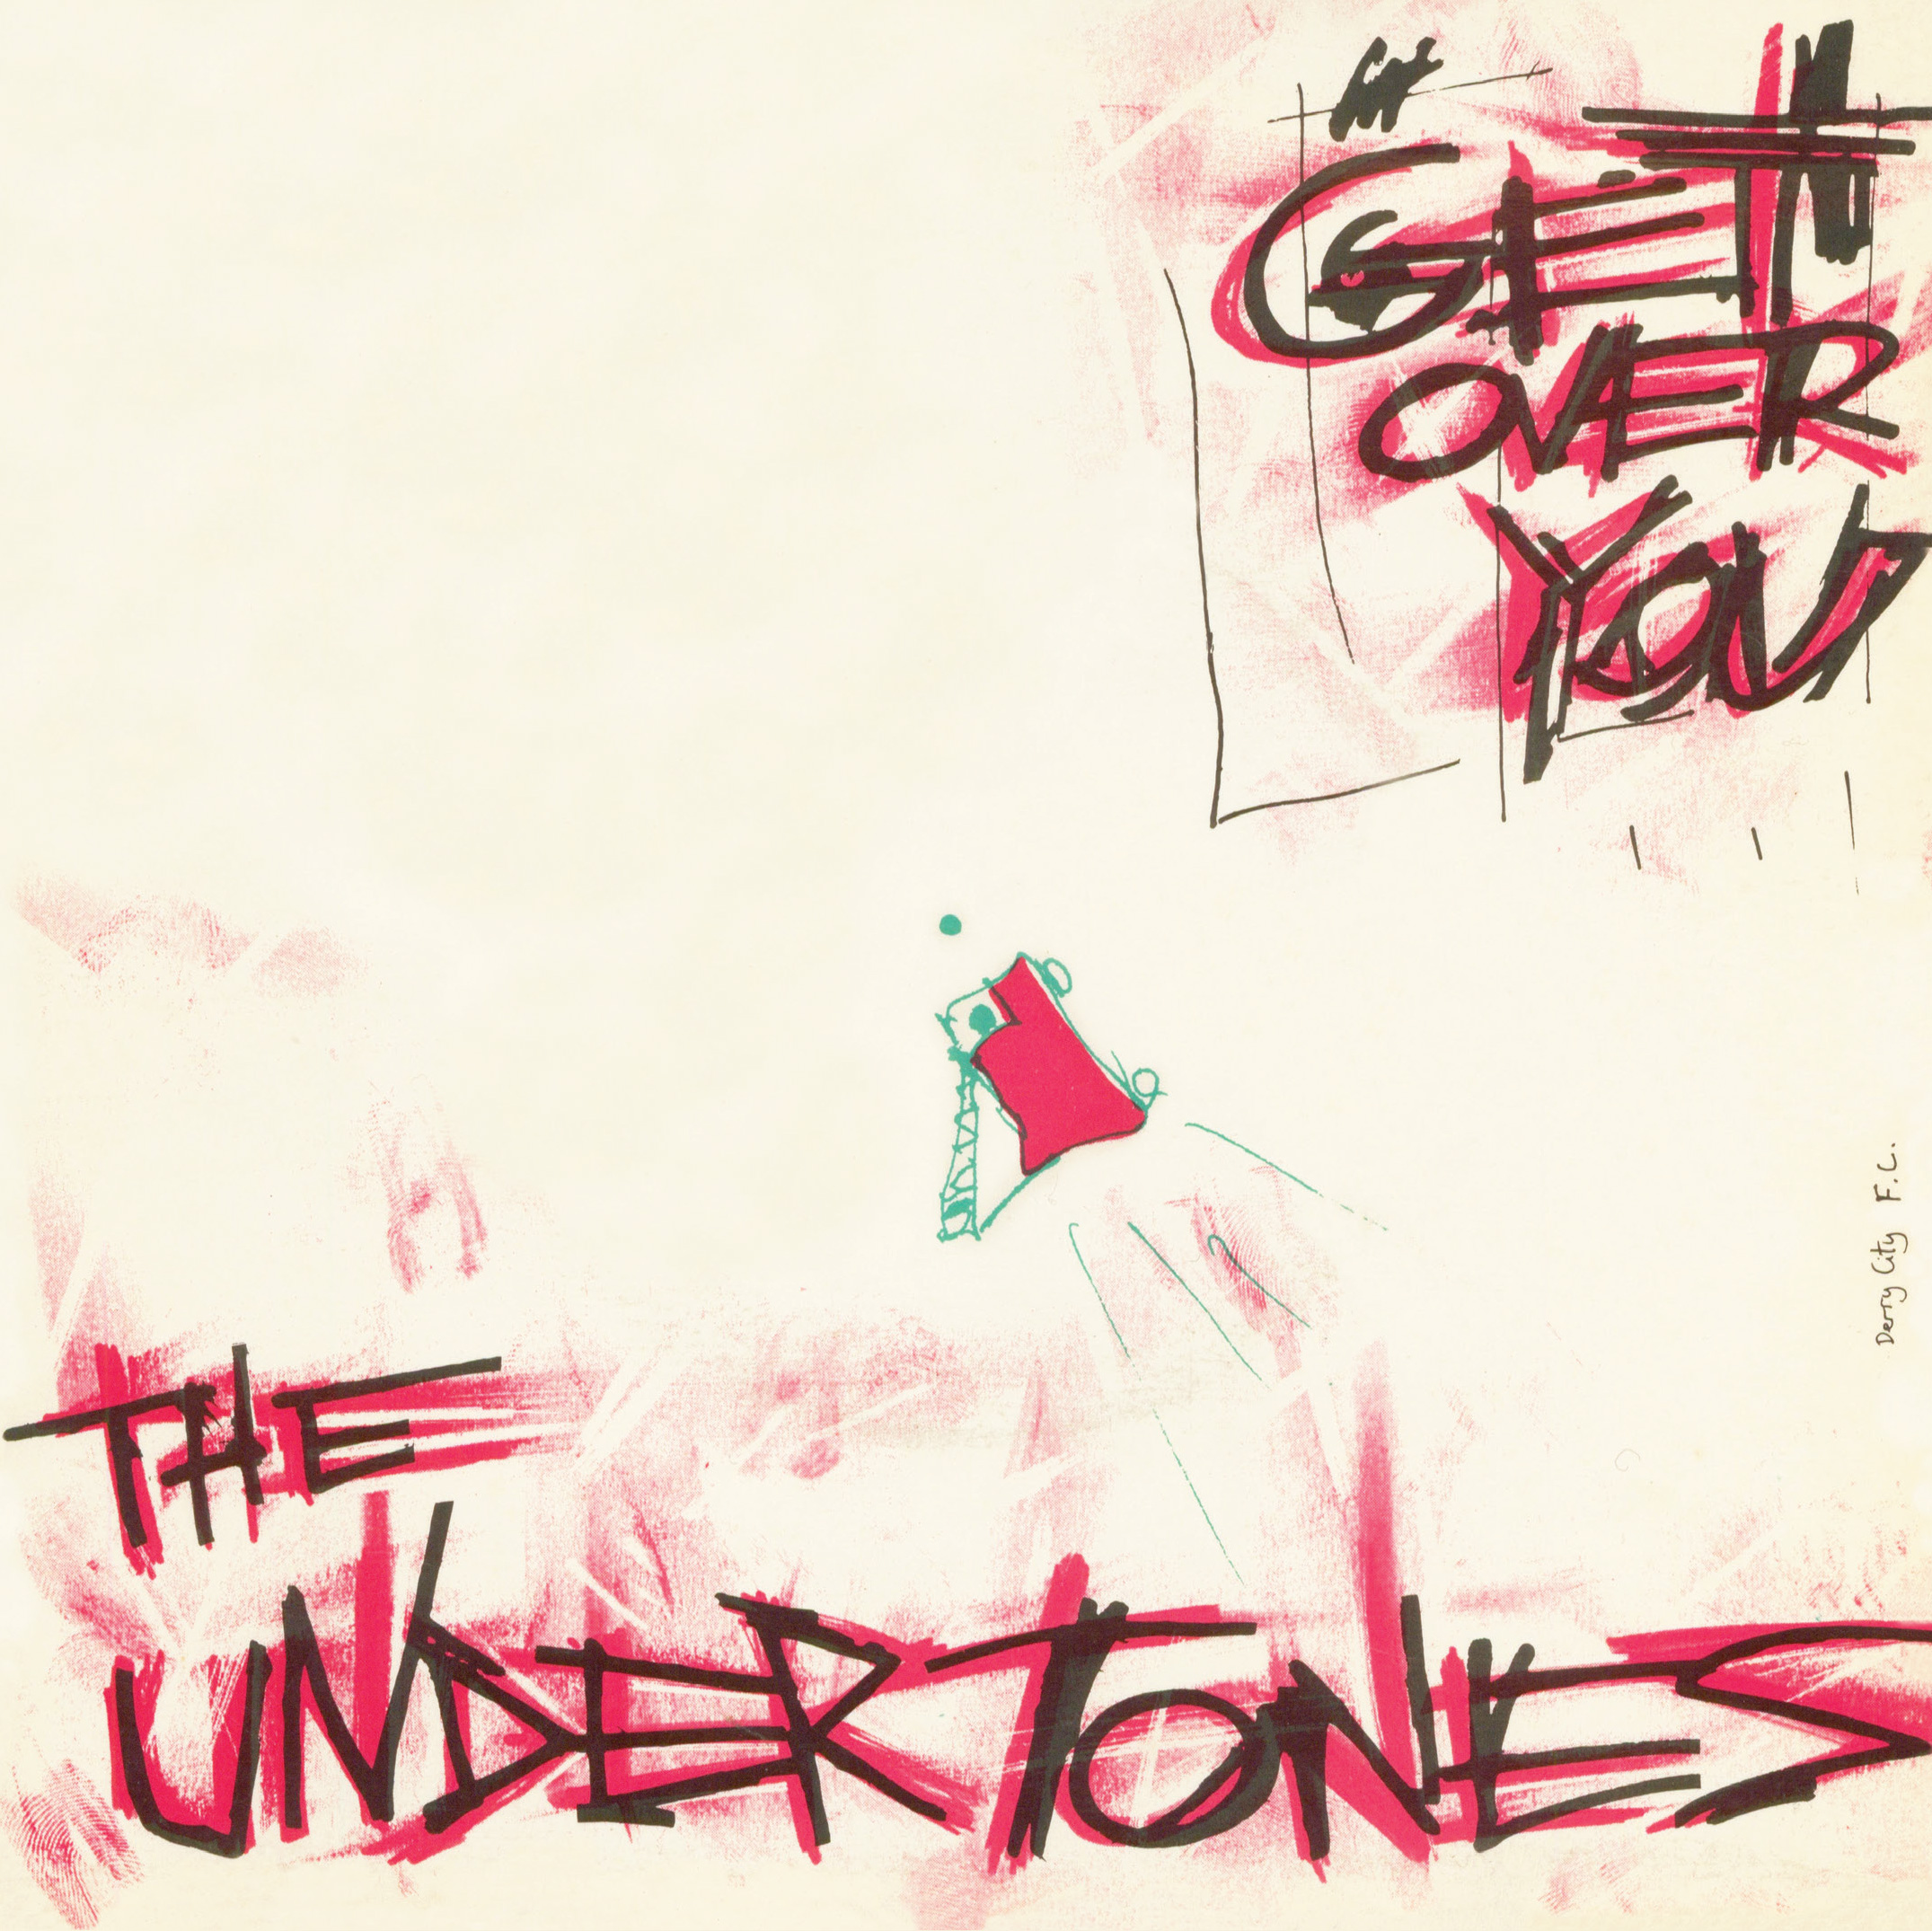 THE UNDERTONES 40TH ANNIVERSARY // BMG announces 2016 vinyl remaster and digital release of The Undertones' highly acclaimed first two albums